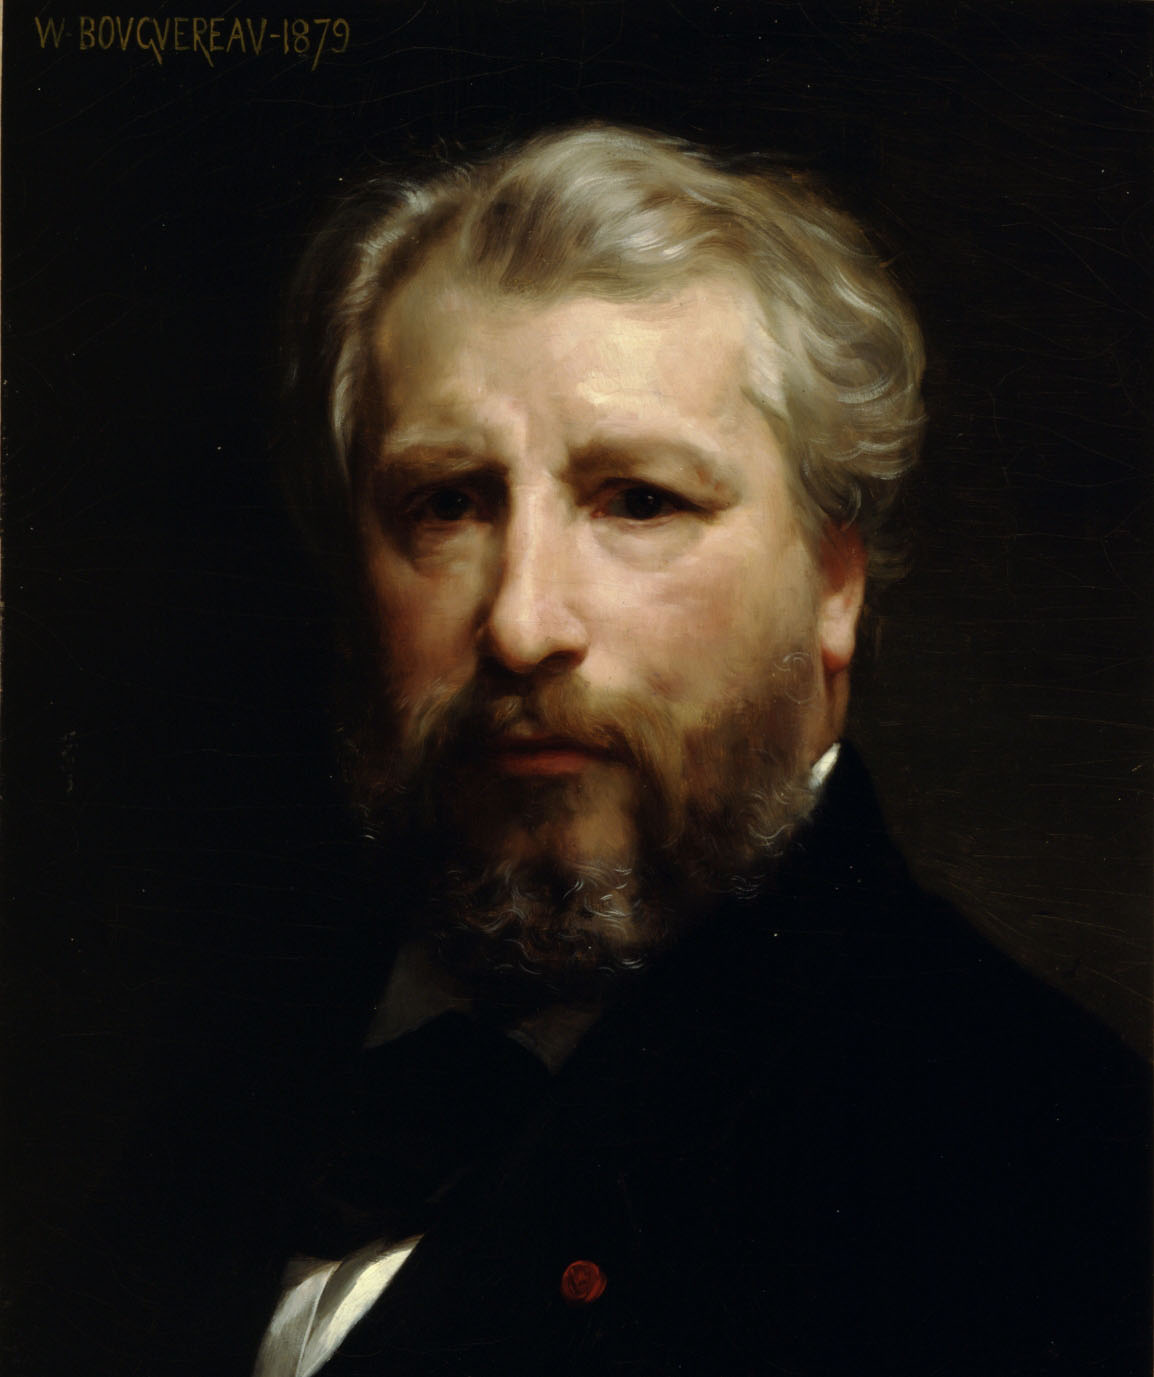 http://upload.wikimedia.org/wikipedia/commons/9/98/William-Adolphe_Bouguereau_(1825-1905)_-_Artist_Portrait_(1879).jpg